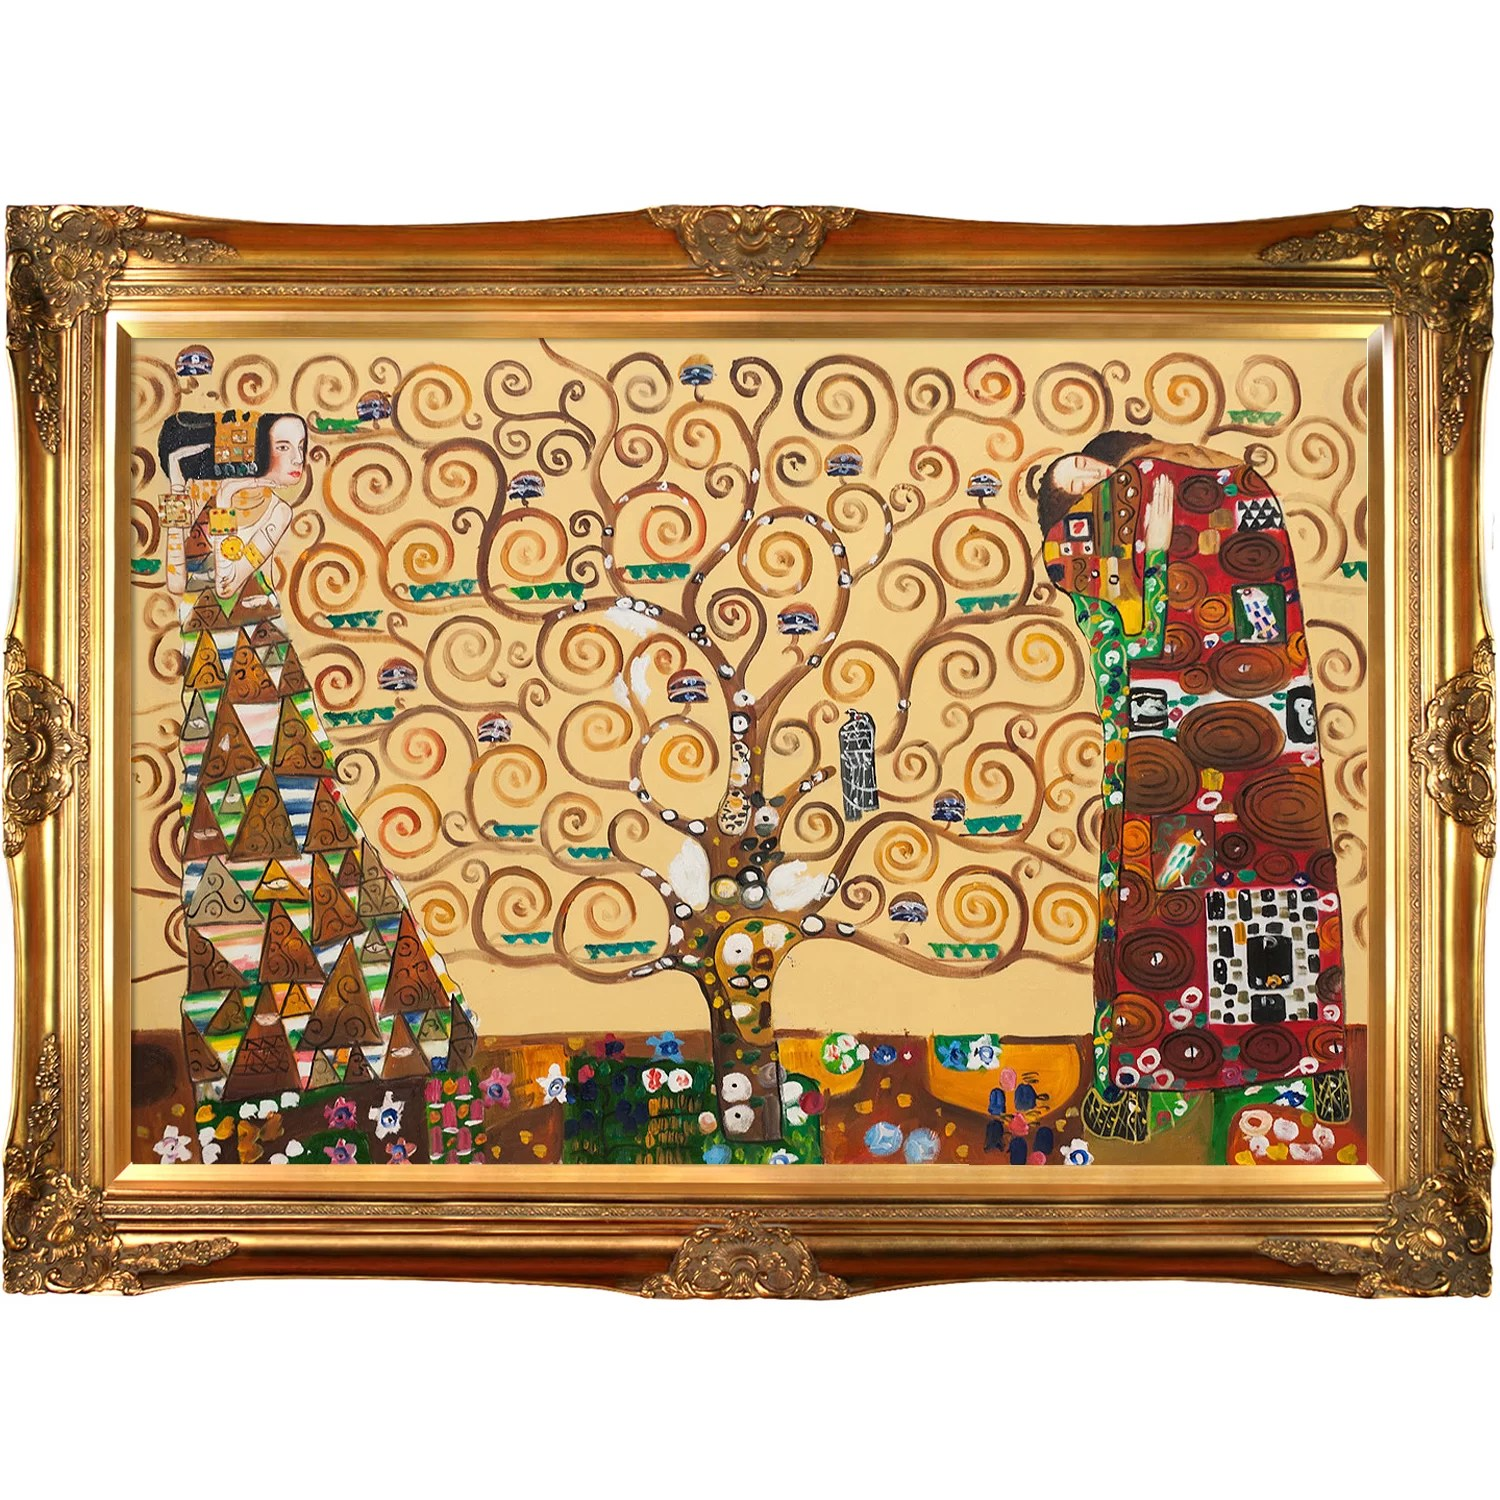 Klimt Fregio Stoclet Tori Home The Tree Of Life Stoclet Frieze By Gustav Klimt